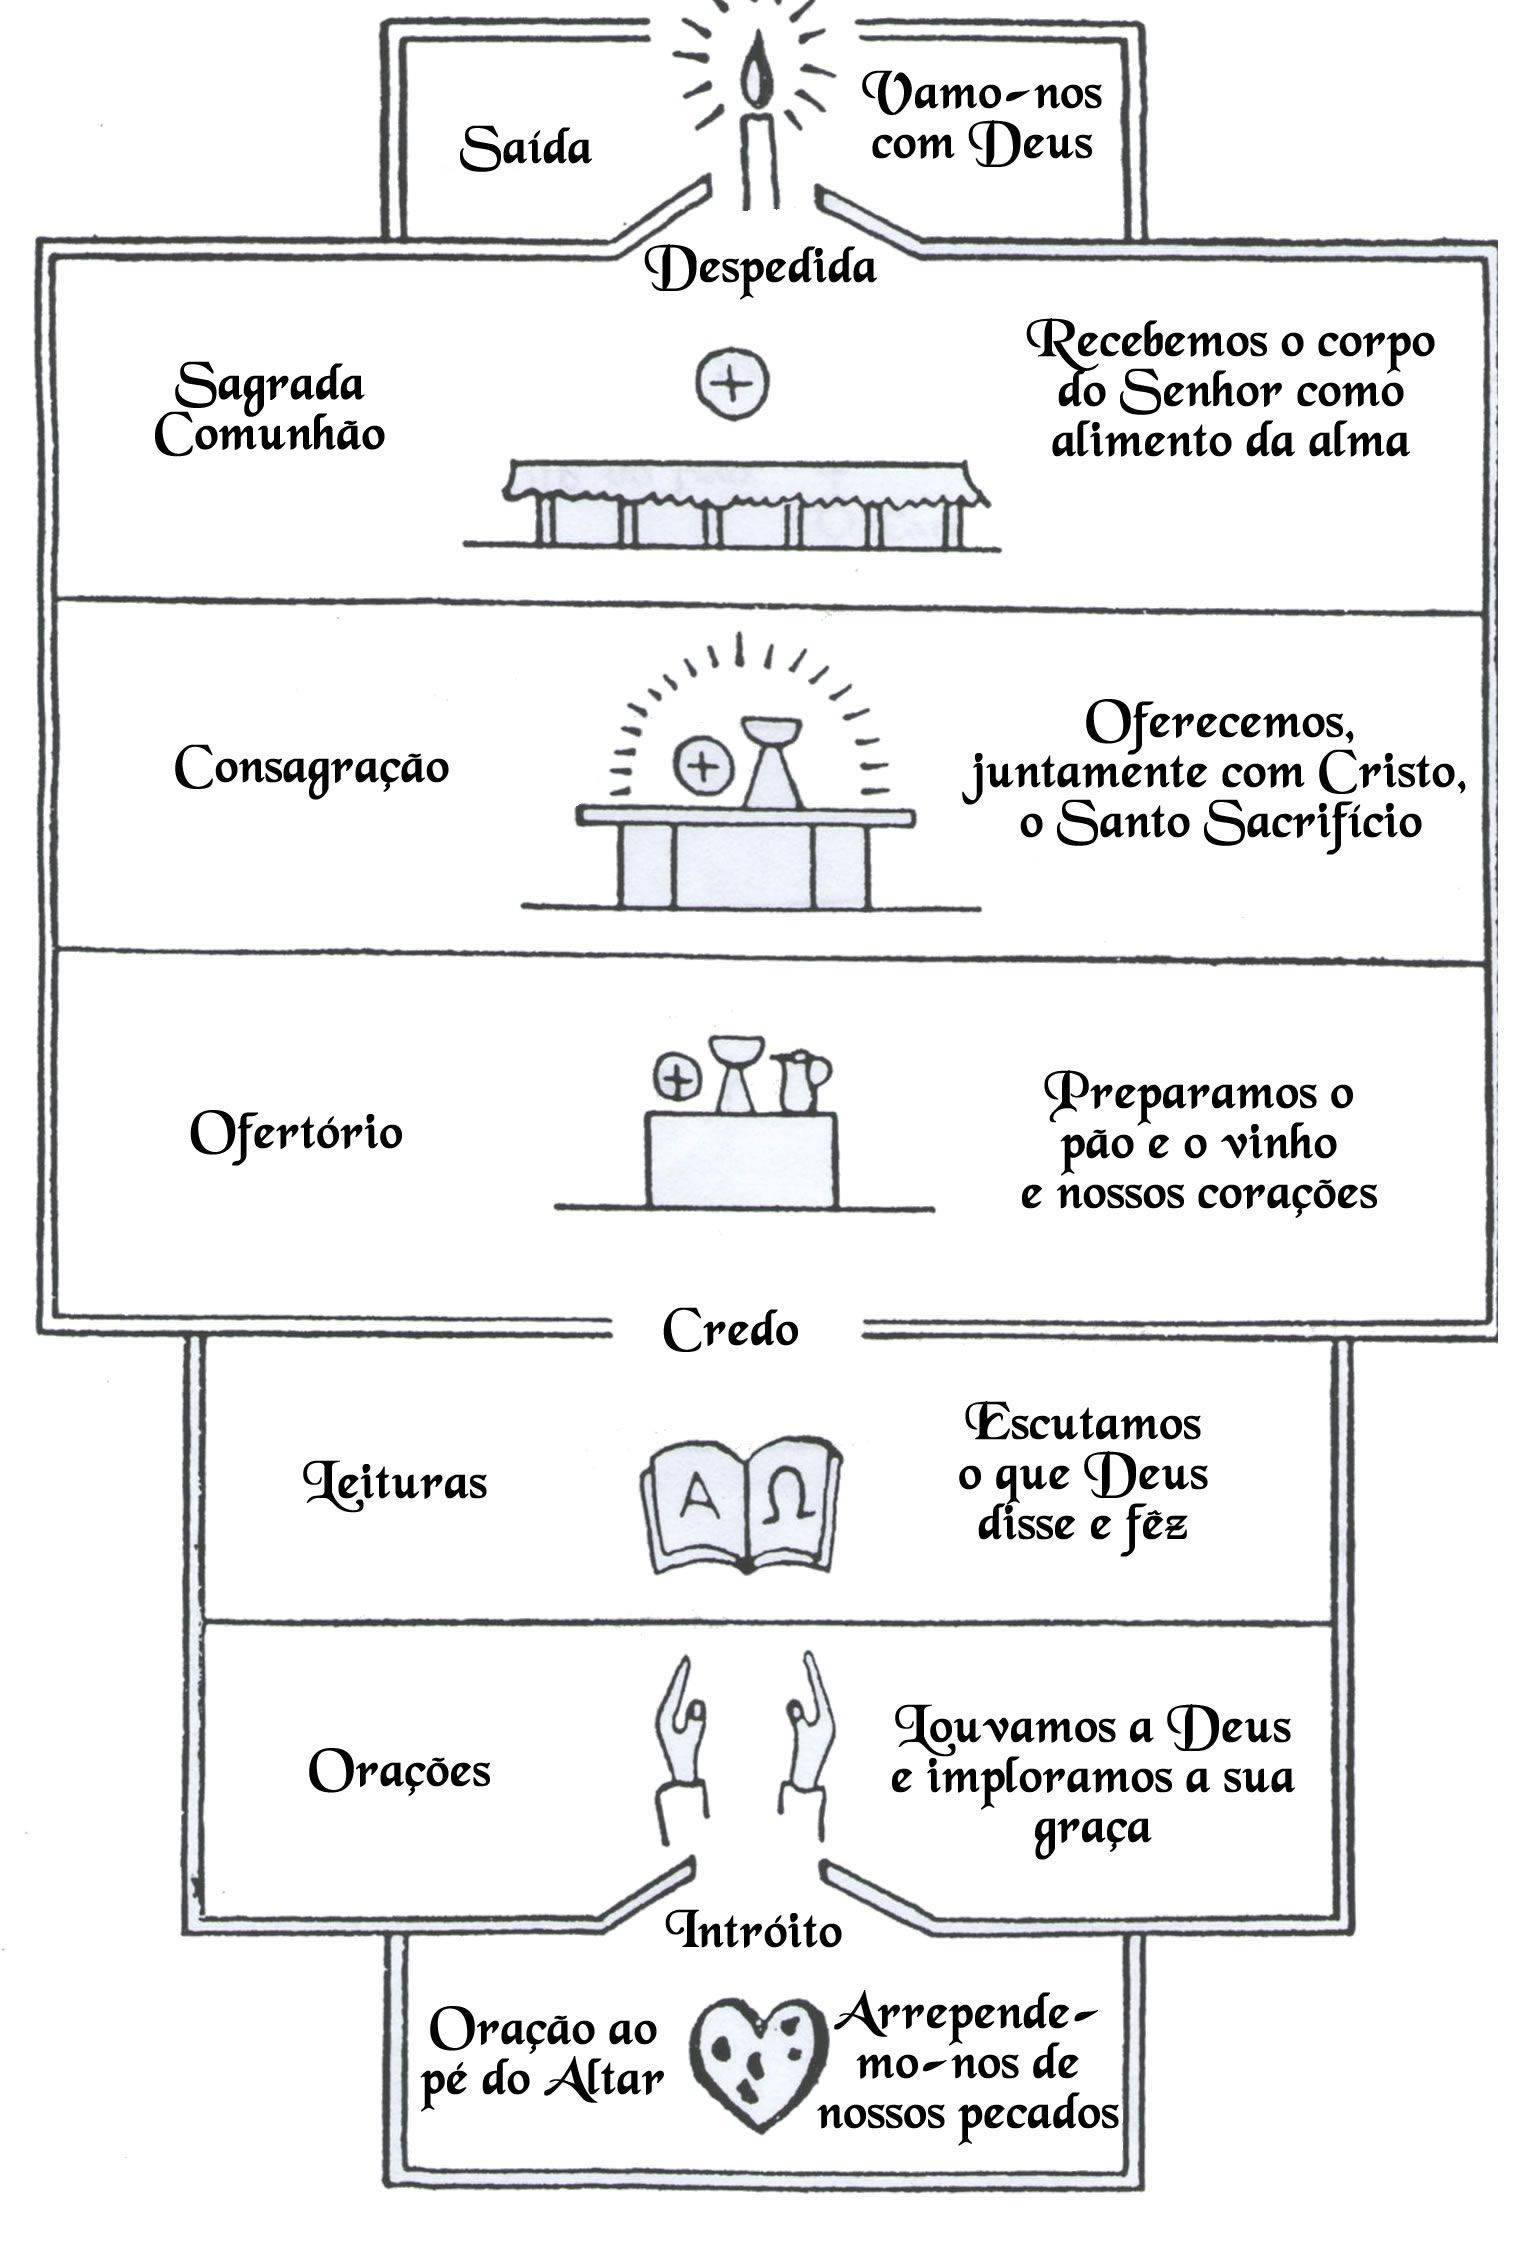 Credo Ilustrado Catequese T Communion Catechism E